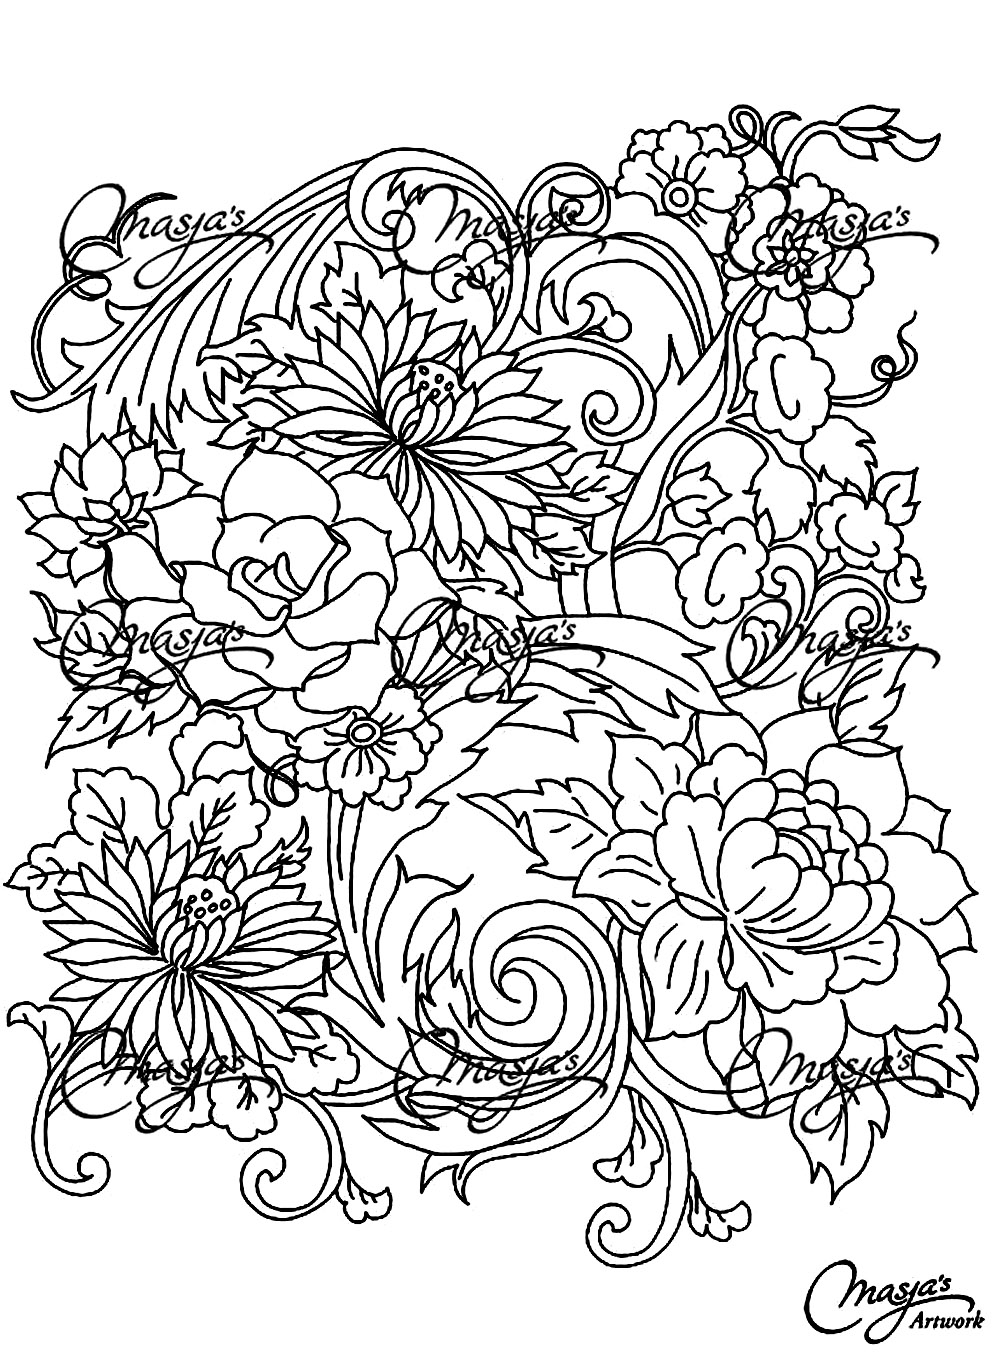 adult coloring pages flowers drawing flower flowers adult coloring pages page 4 pages coloring adult flowers